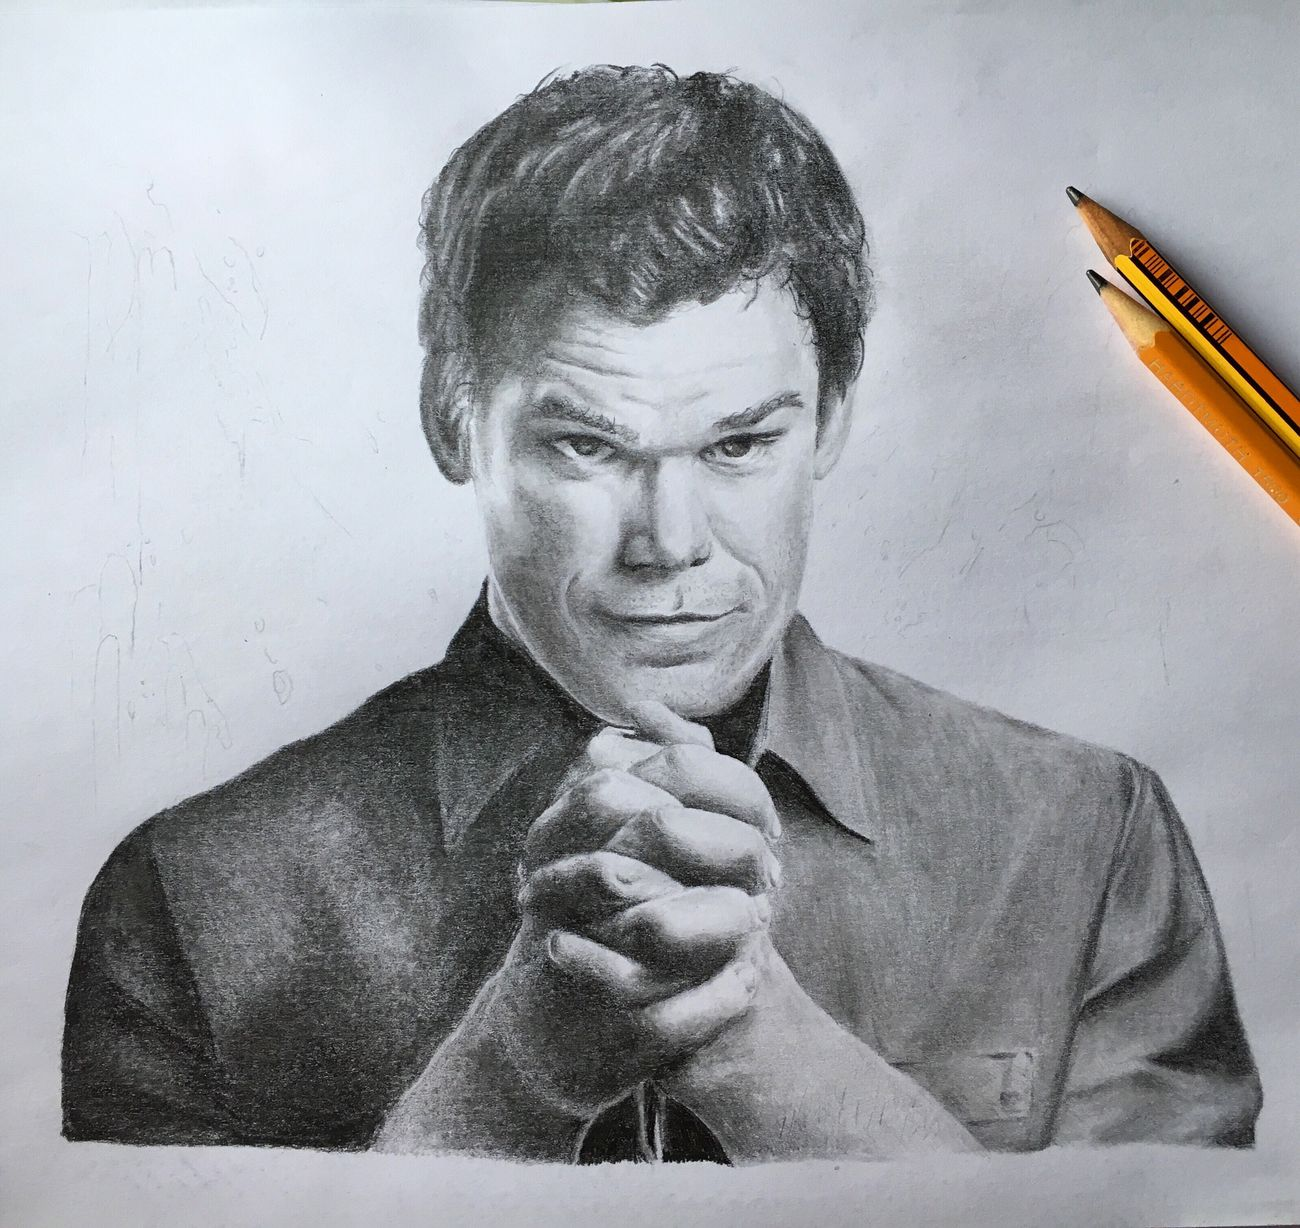 Drawing Graffite Realisticdrawing Blackandgrey Realistic Apprenticetattoo Draw Blackandgray Dexter Dexter Morgan